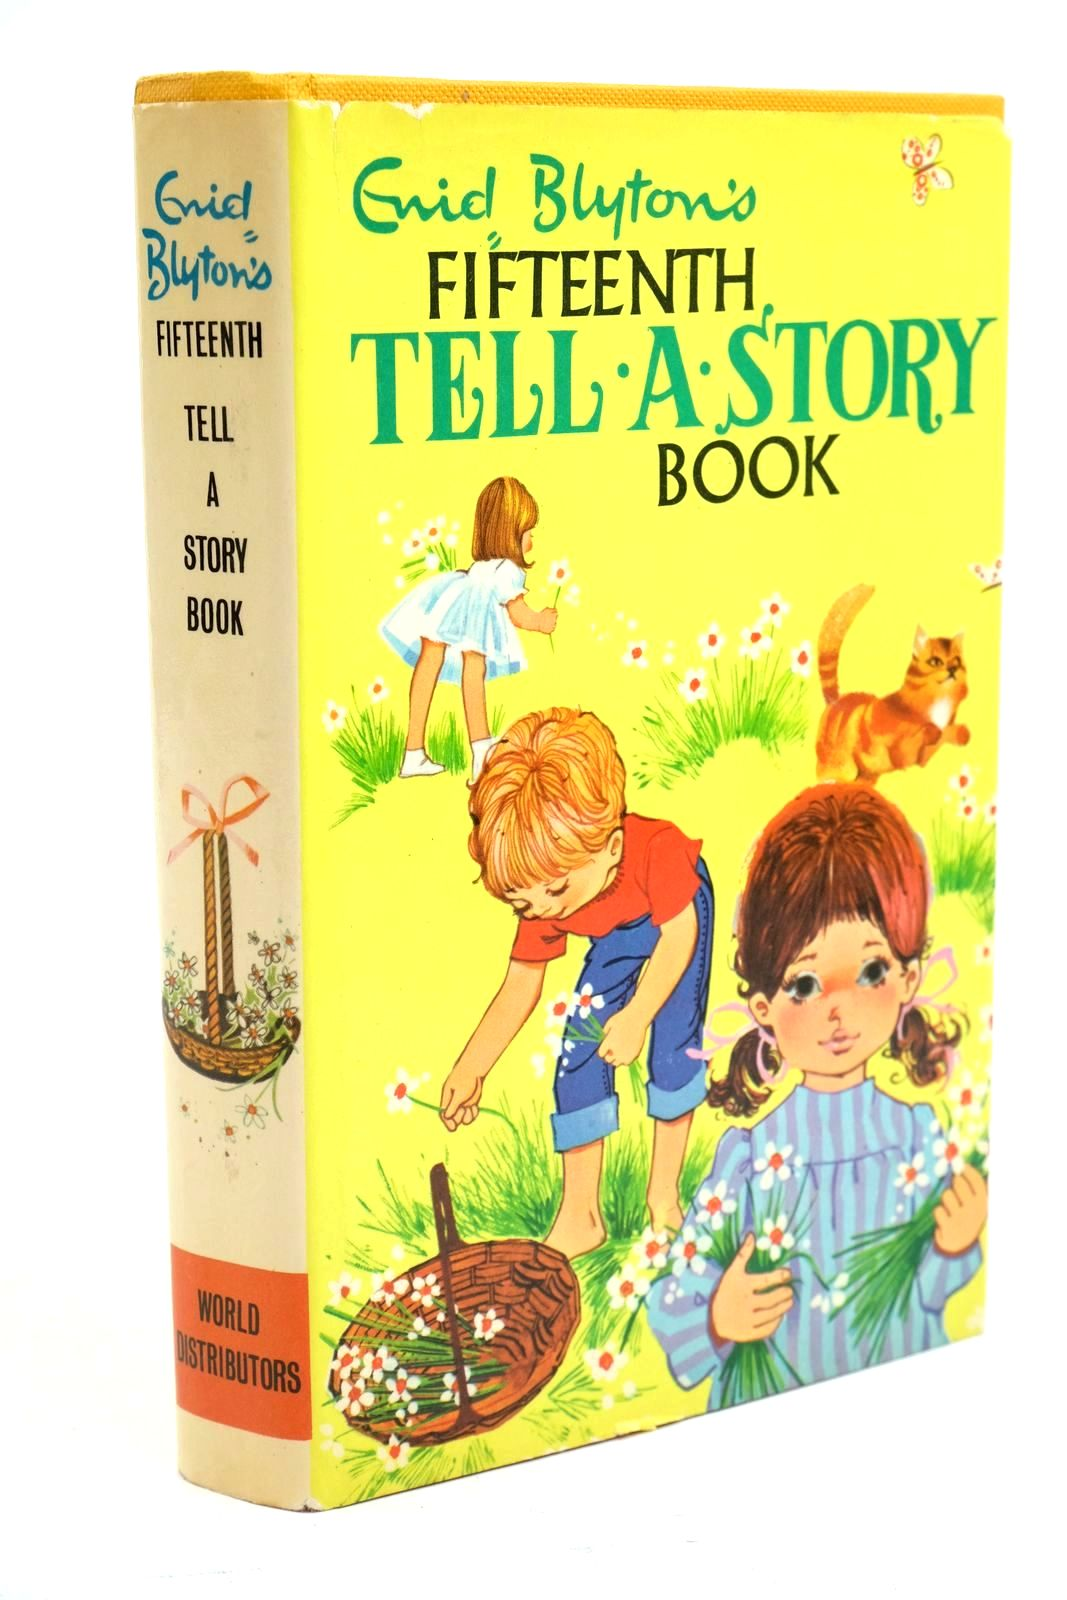 Photo of ENID BLYTON'S FIFTEENTH TELL-A-STORY BOOK written by Blyton, Enid published by World Distributors Ltd. (STOCK CODE: 1321096)  for sale by Stella & Rose's Books